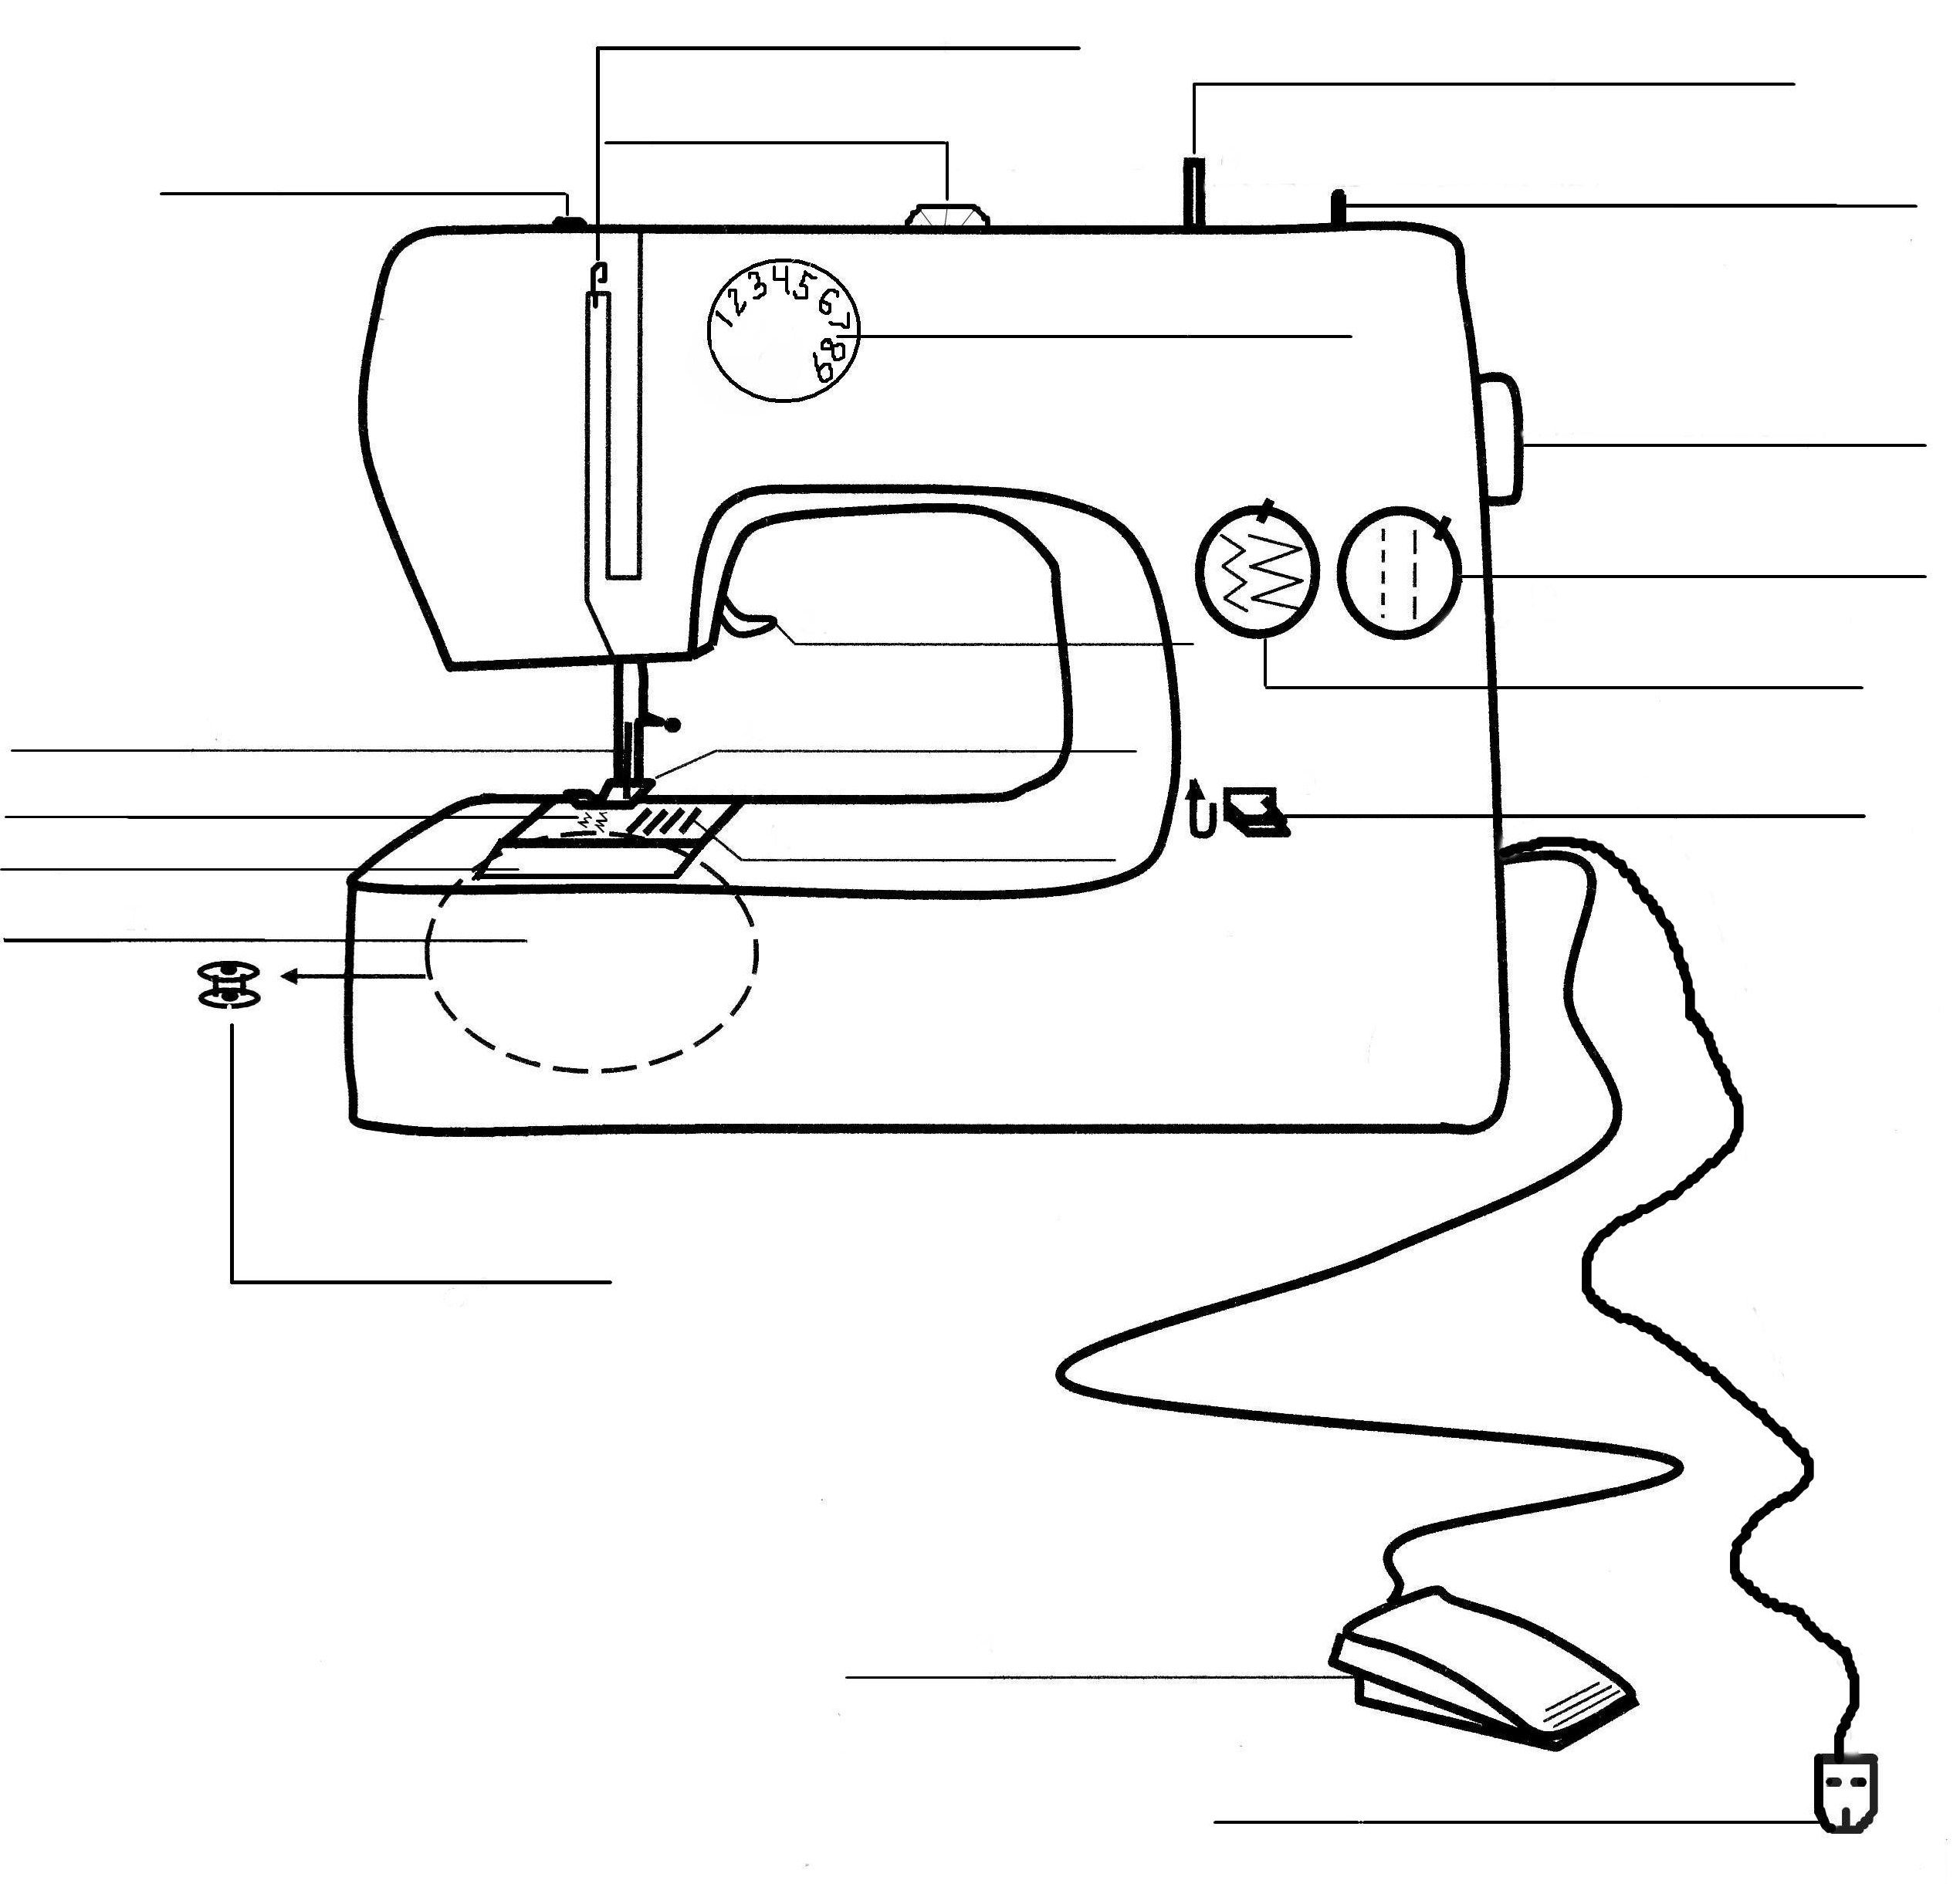 fill in the blank sewing machine parts aaa embroidery pinterest rh pinterest com Basic Sewing Terminology Worksheet Basic Sewing Equipment Worksheet